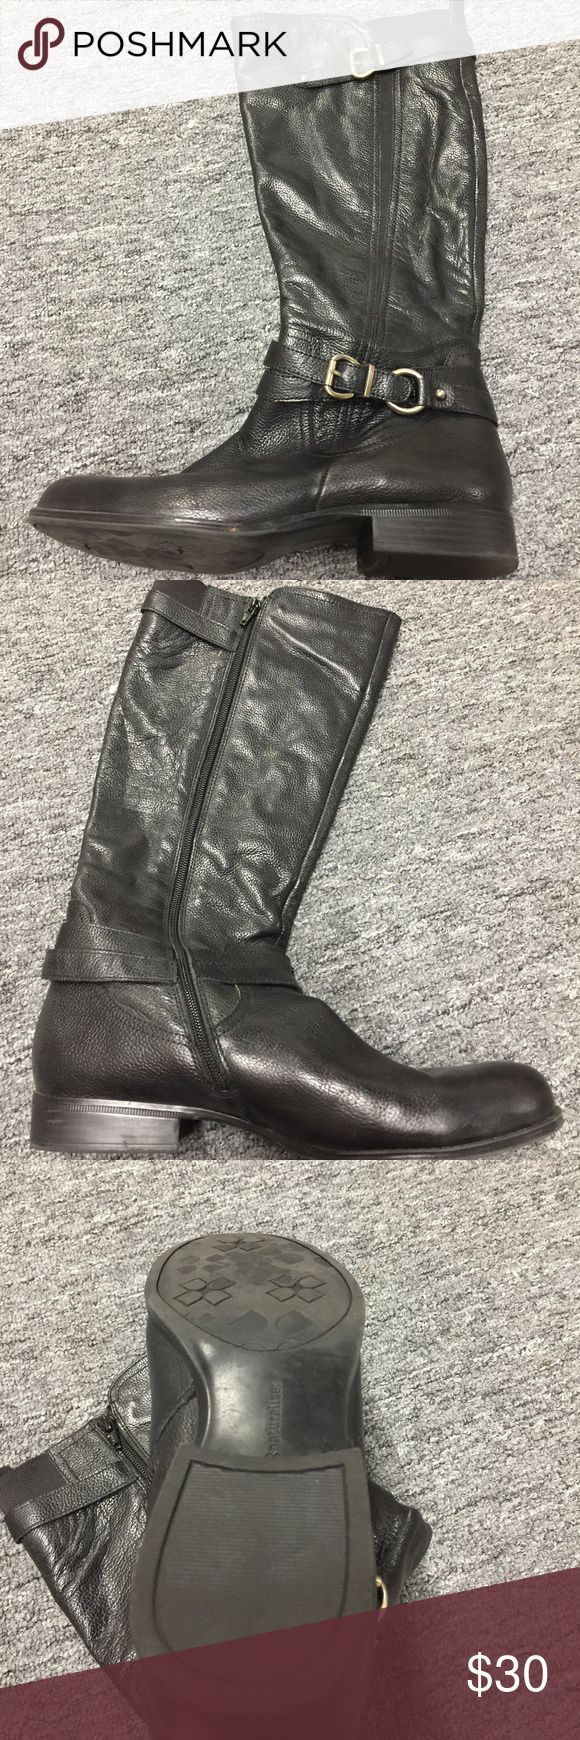 """Naturalizer Wide Calf Riding Boots From Nordstrom Website: A curved gore perfects the N5 Comfort System fit of a lightly textured boot burnished for a classic look. 1"""" heel. 15"""" boot shaft; 14 1/2"""" calf circumference. Stretches to fit calf. (size 8.5). Side zip entry. Leather upper/synthetic lining and sole. Size 11 Lightly worn,  only evidence is on the sole Naturalizer Shoes"""